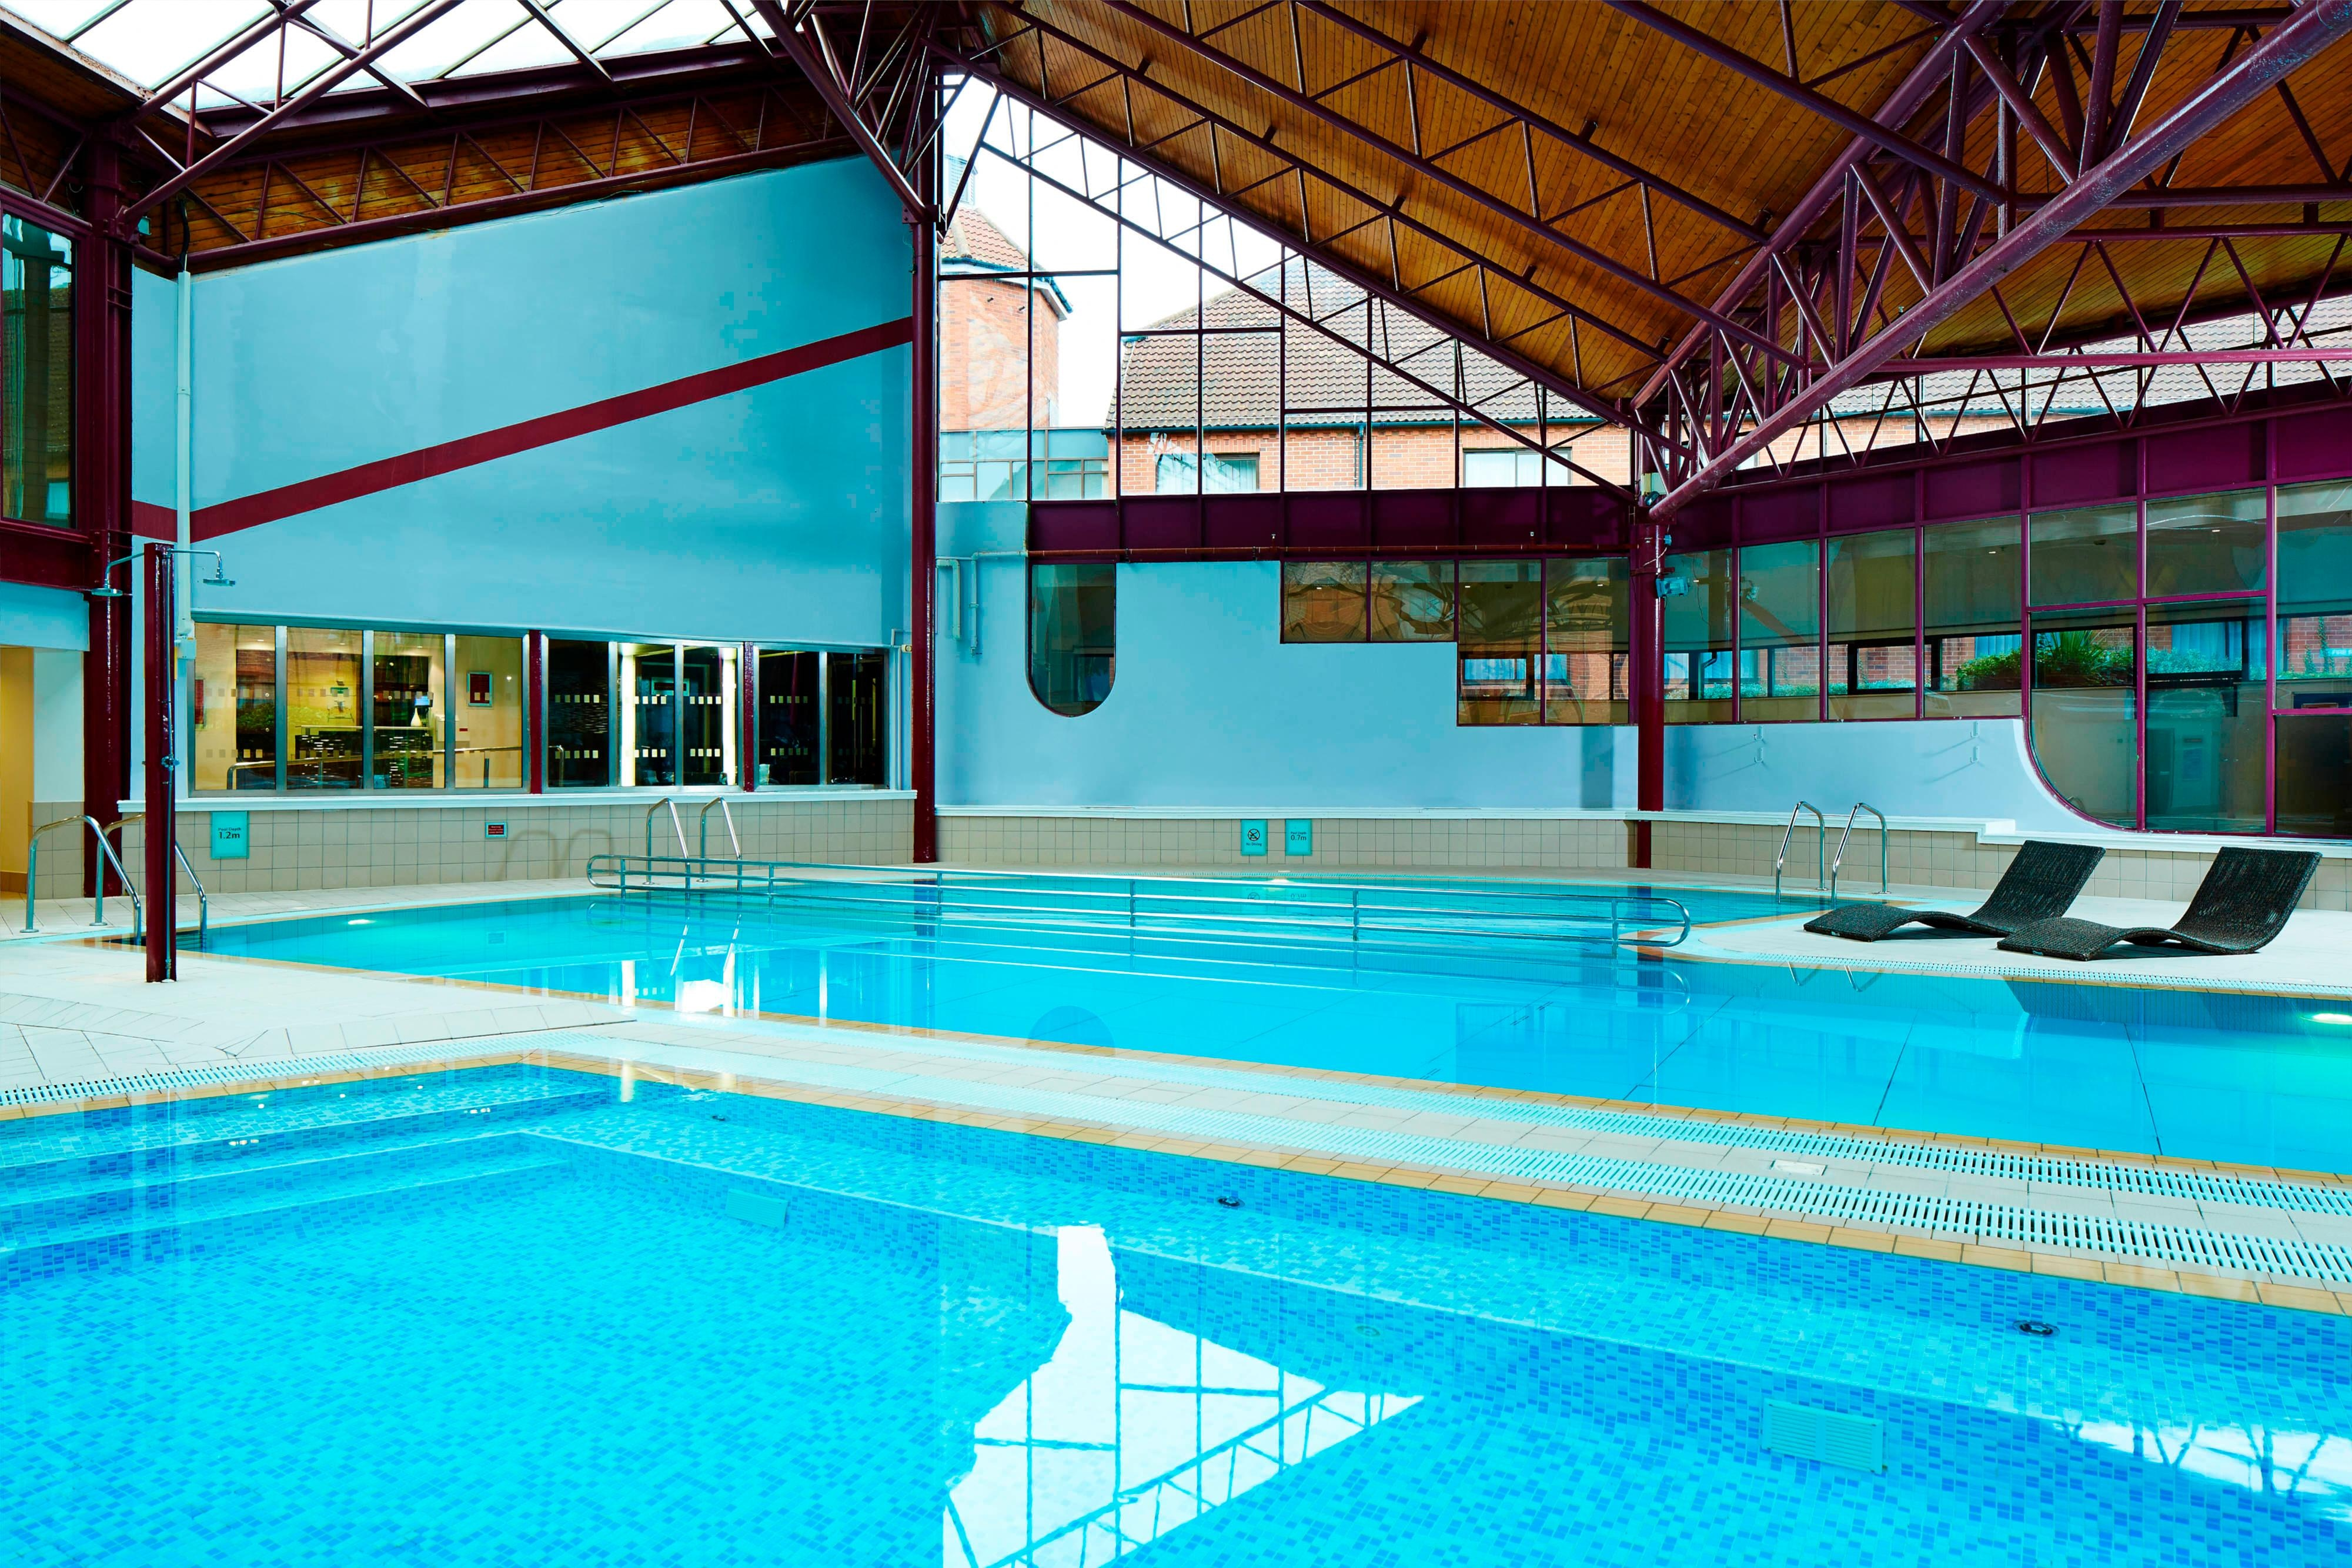 Swimming Pool in Waltham